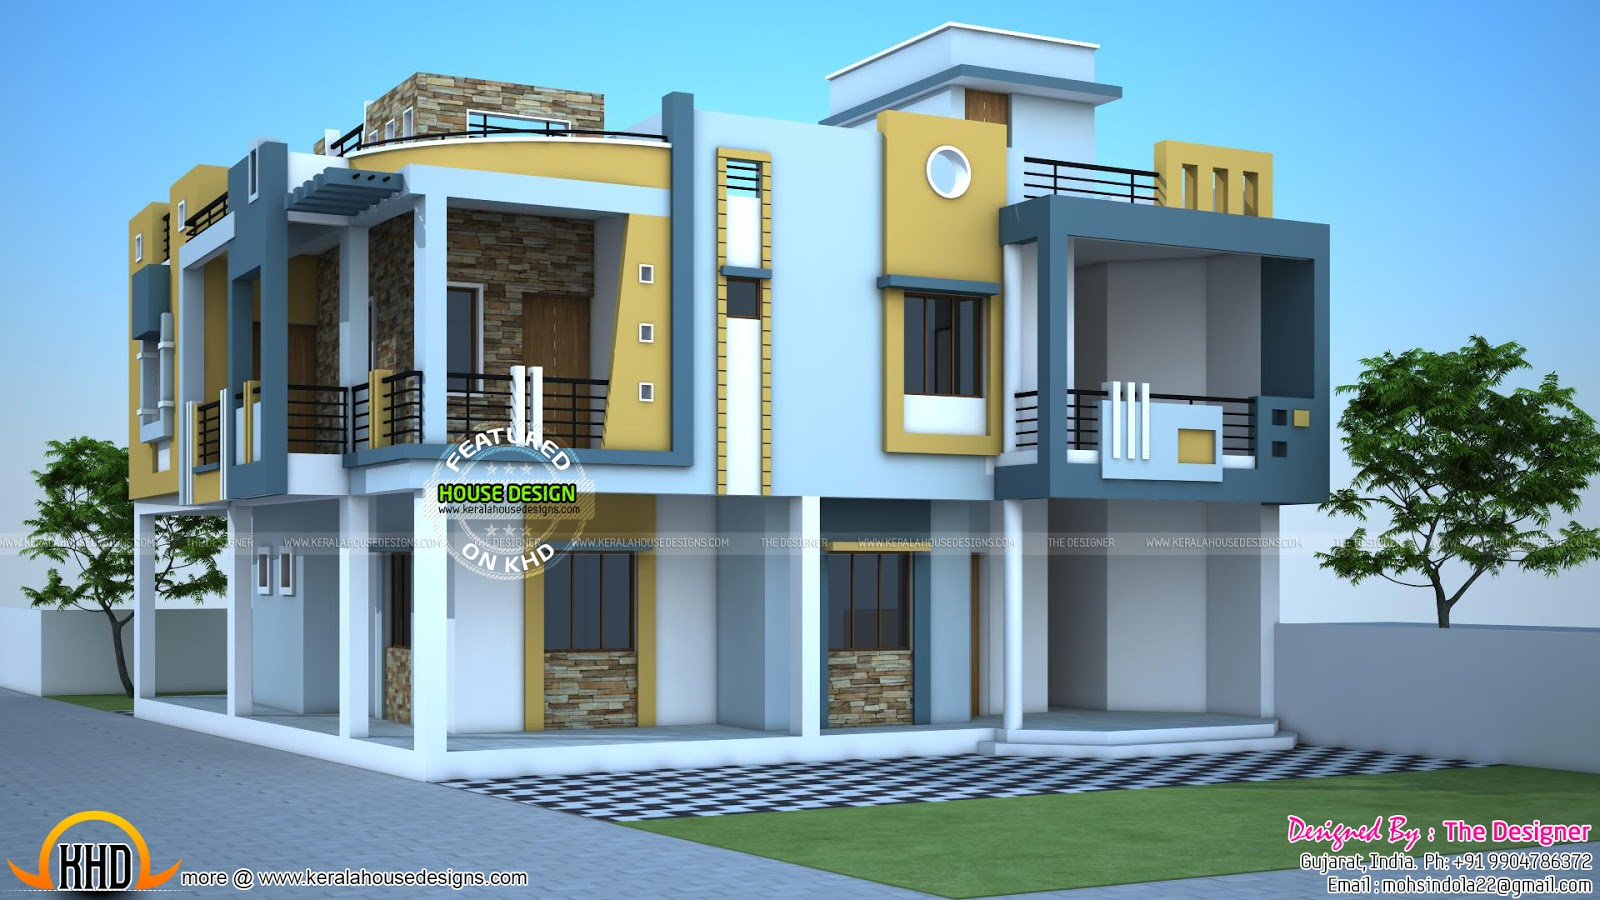 Modern duplex house in india kerala home design and for Independent house designs in india